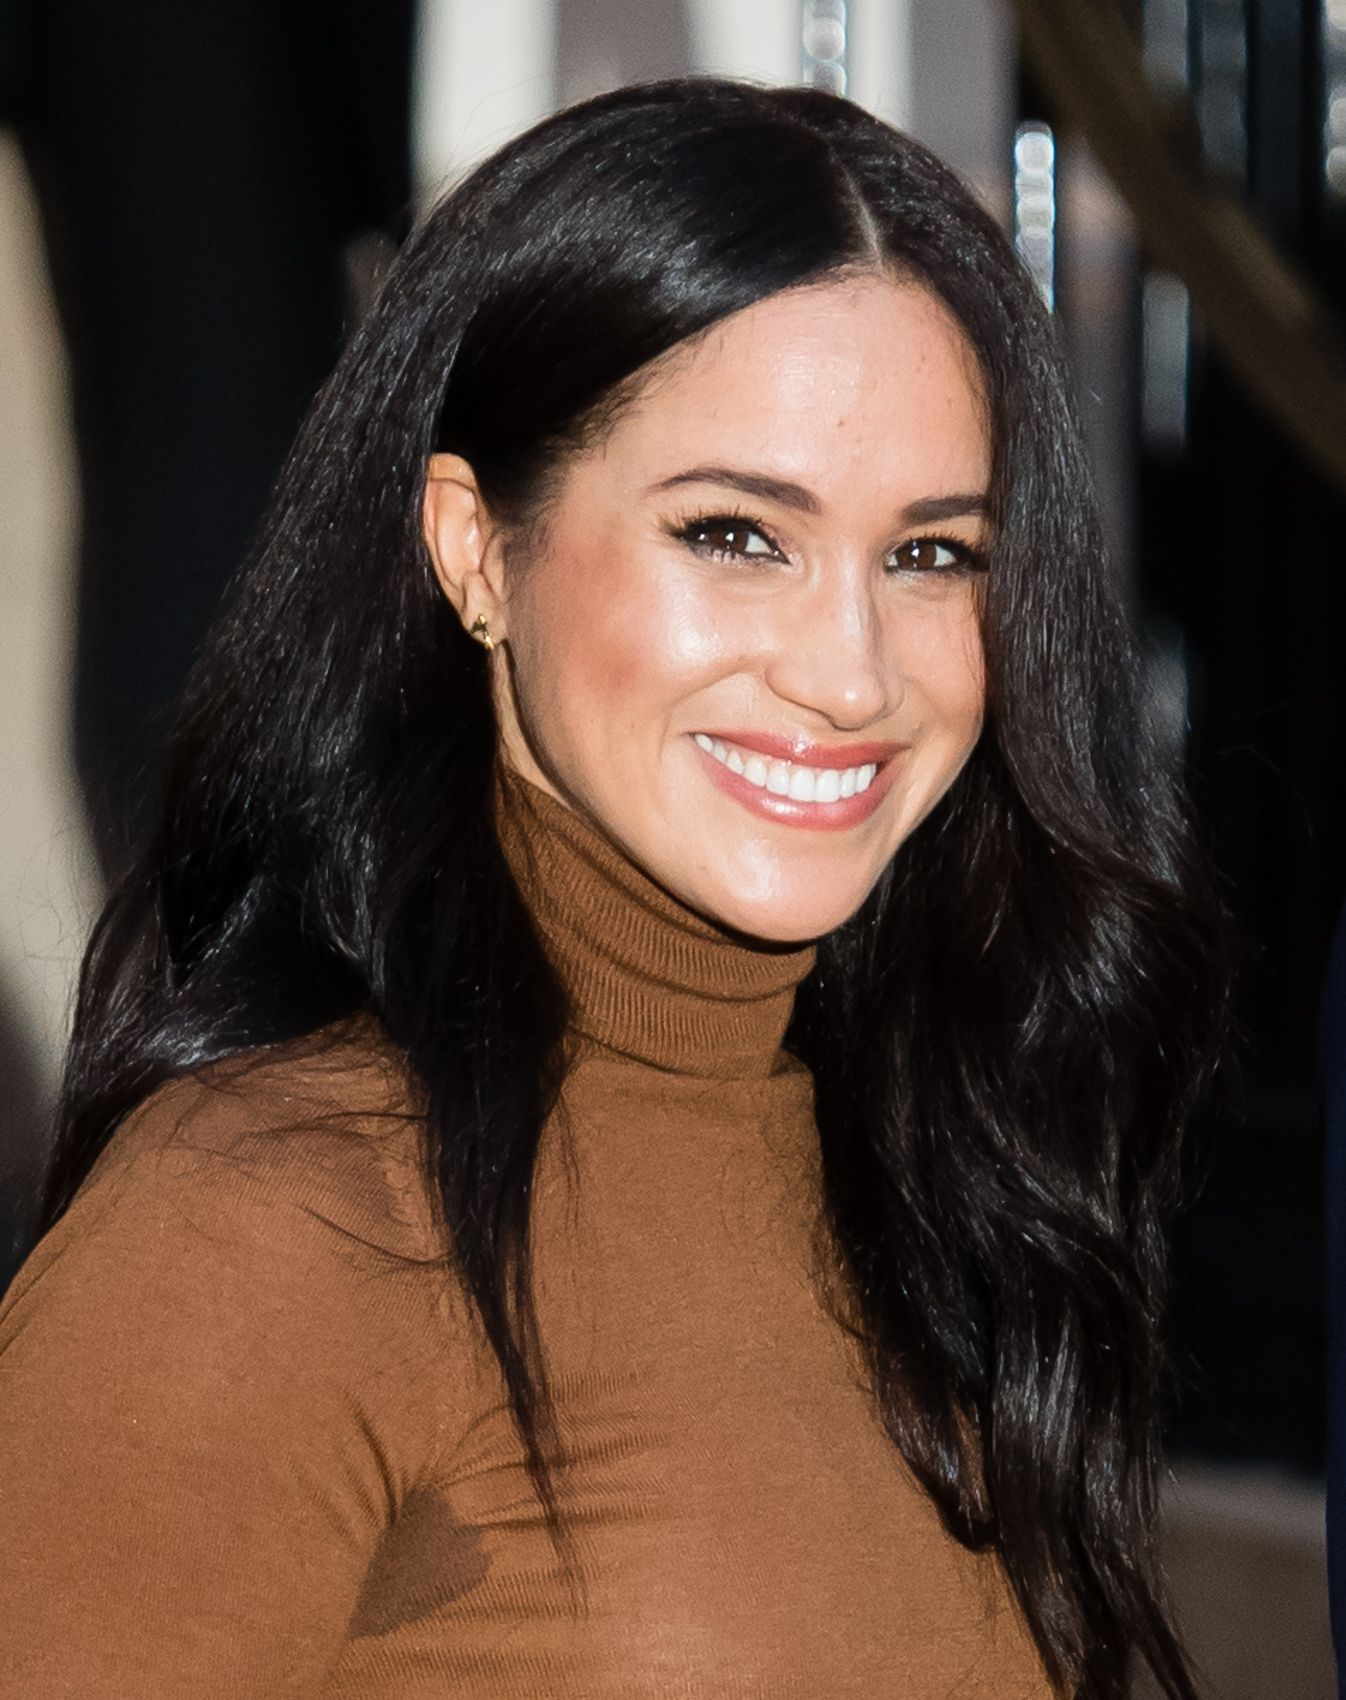 Meghan Markle smiles looking at the camera from an angle